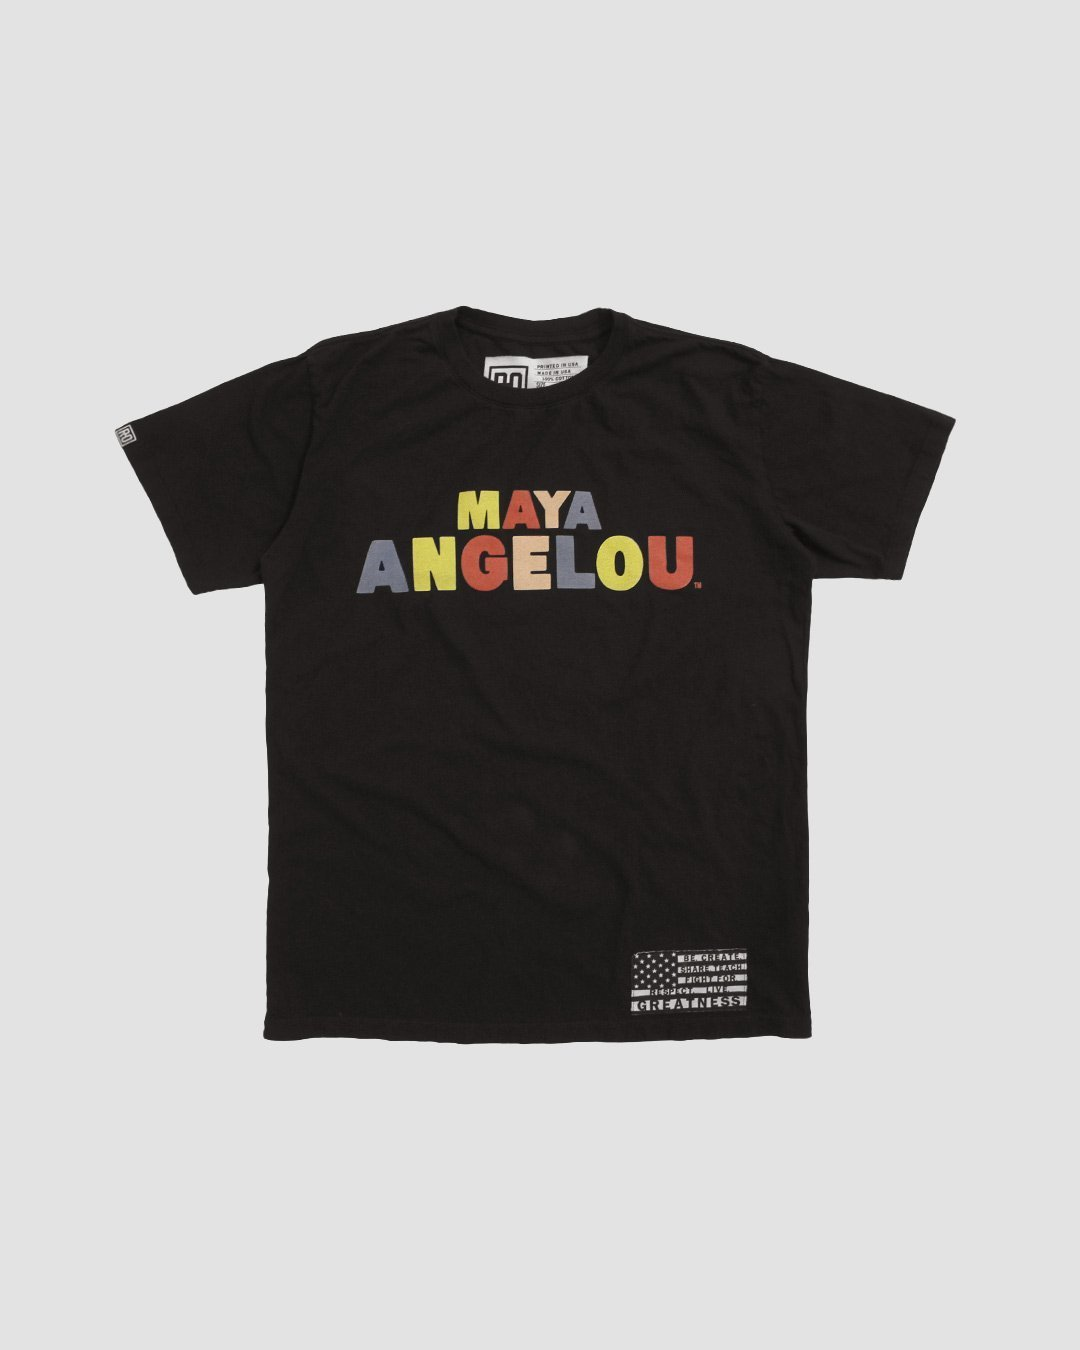 BHT - Maya Angelou Tee - Roots of Inc dba Roots of Fight